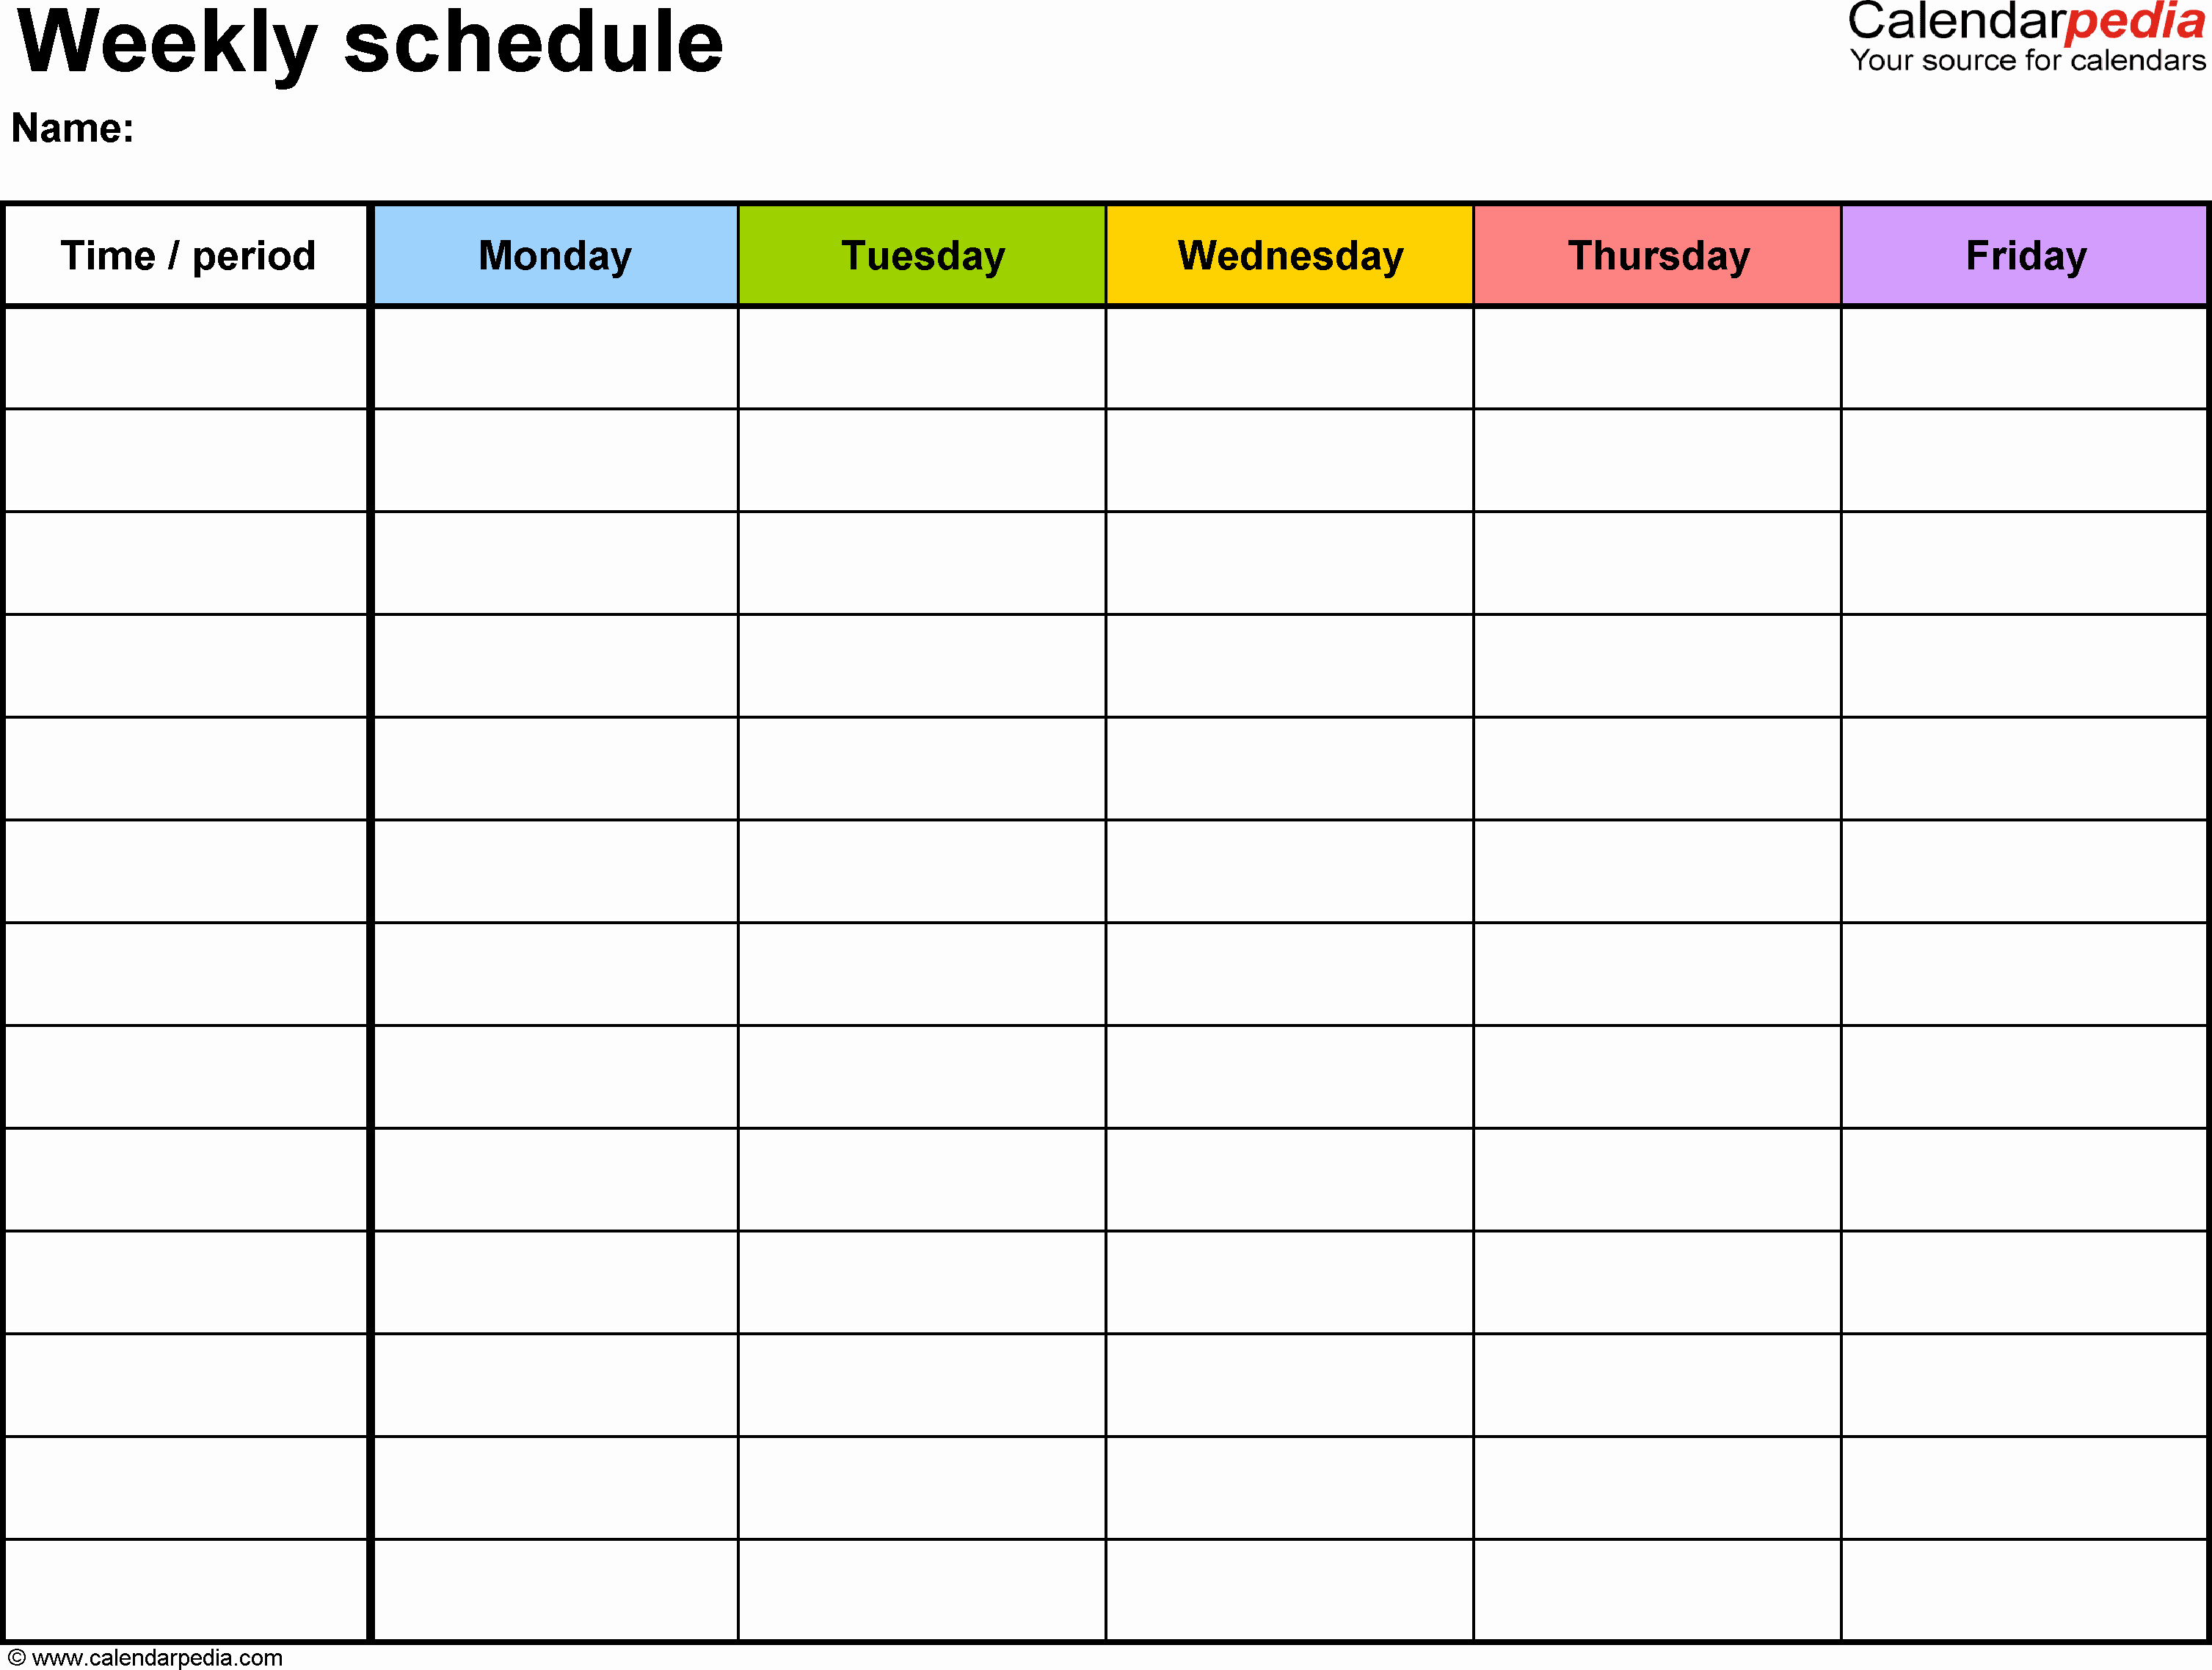 5 Day Calendar Template Word Lovely Weekly Schedule Template for Word Version 1 Landscape 1